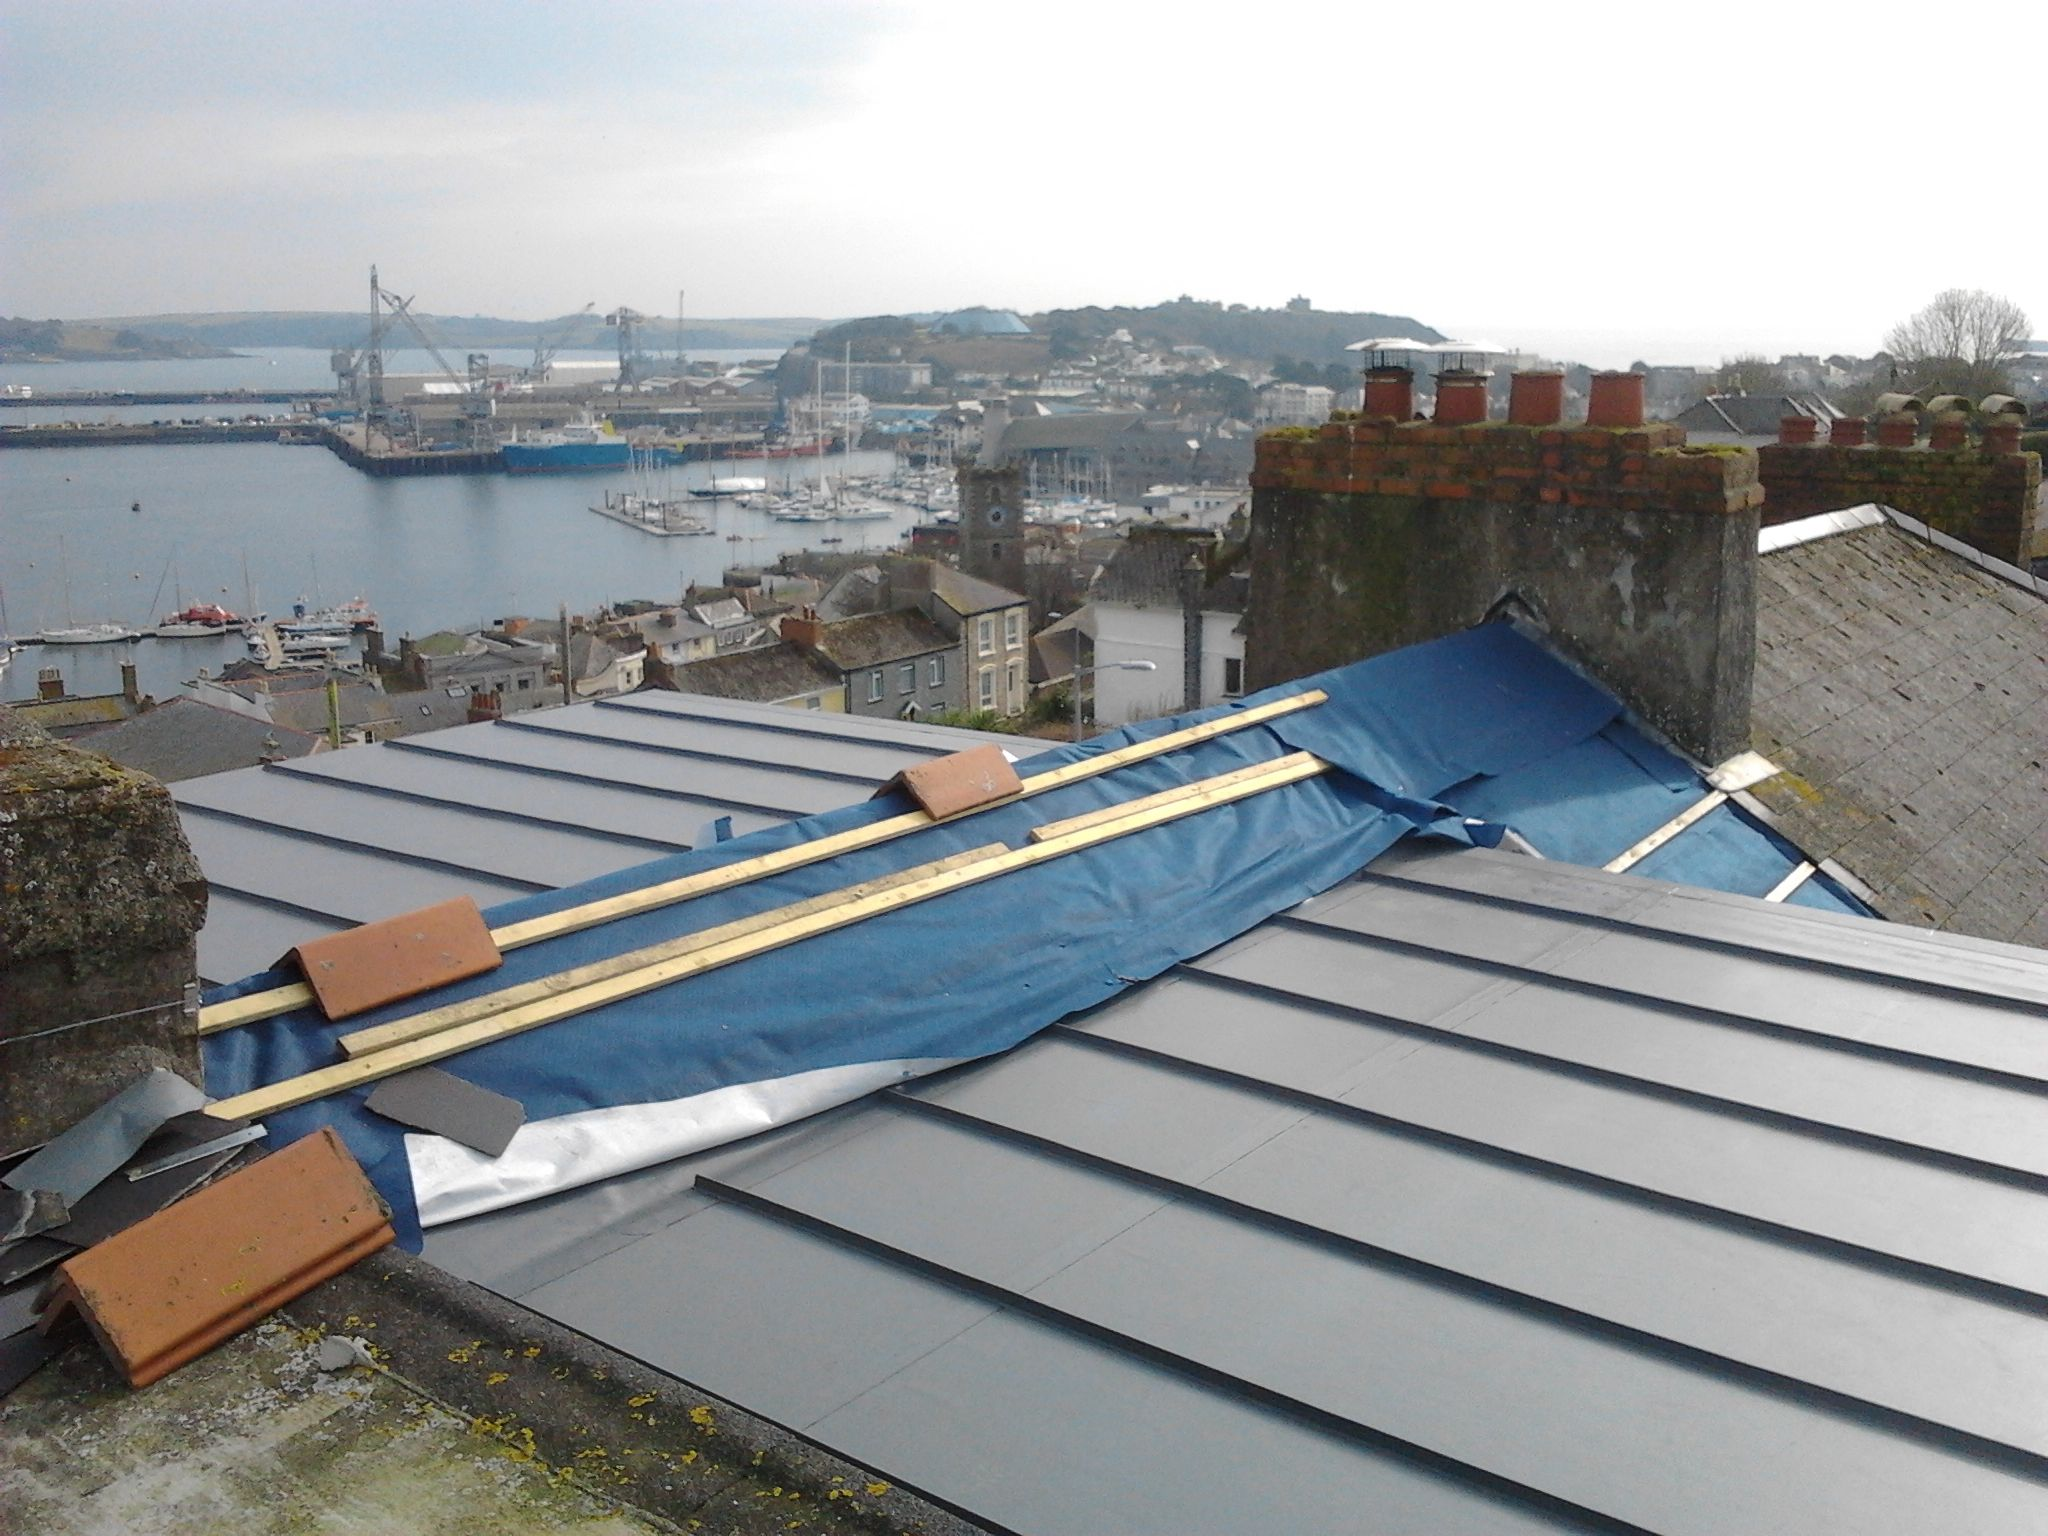 Single ply roofing membranes are ideal for cornish flat roofs also work well with curves and free form roofing shapes call pellow flat roofing on 01326